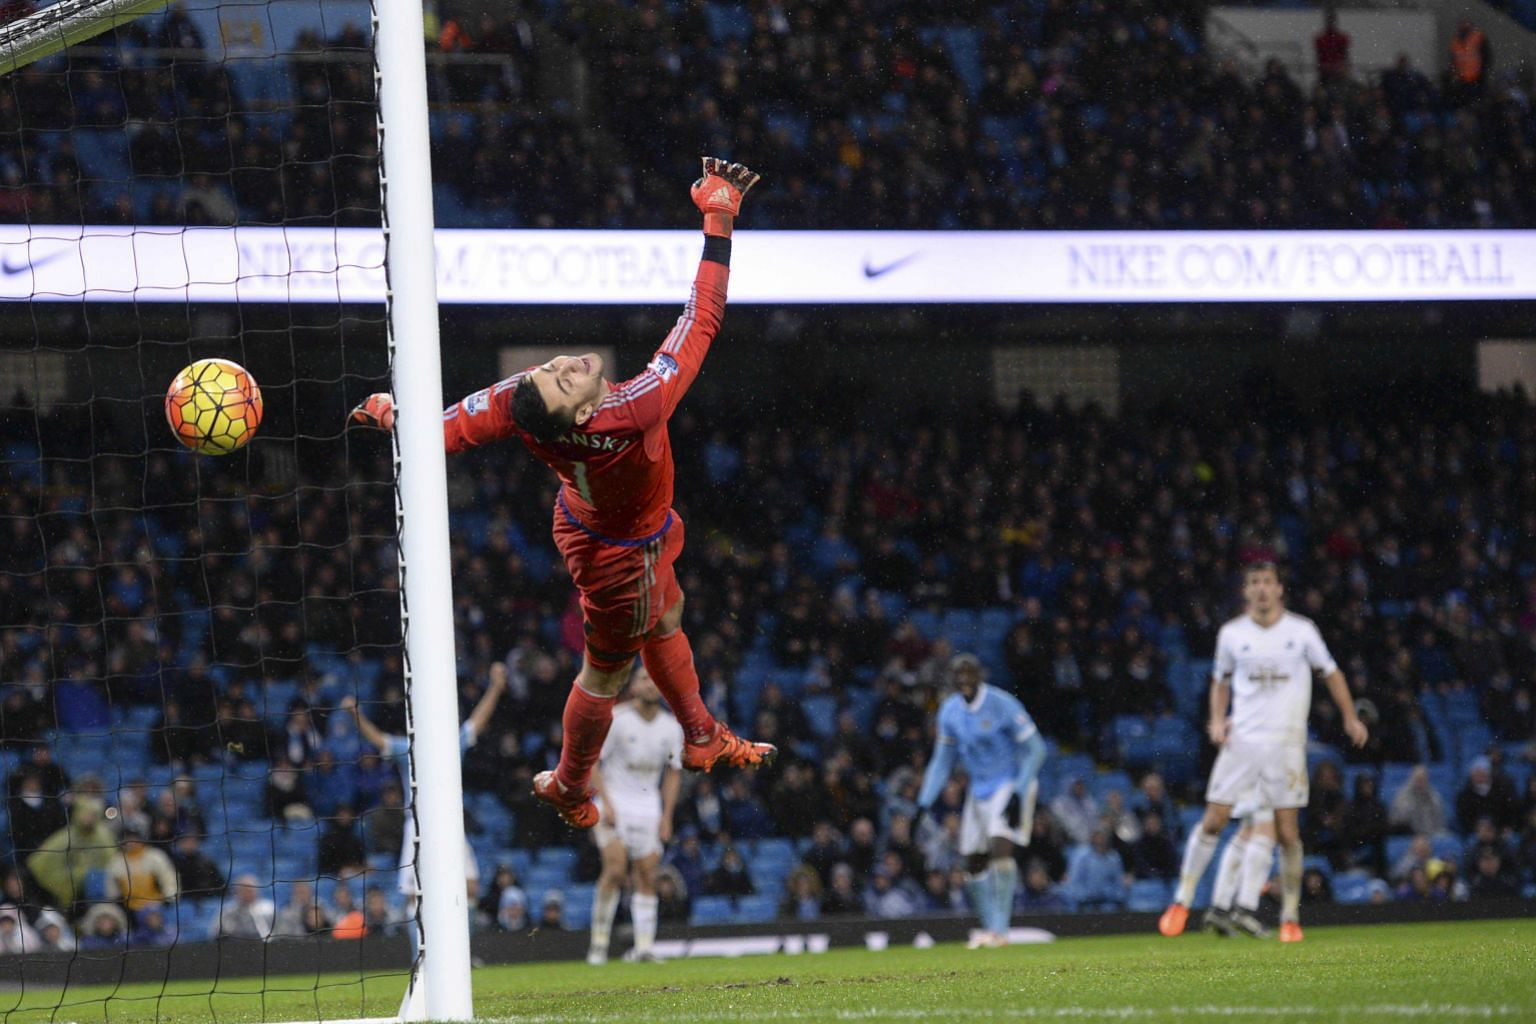 Swansea City goalkeeper Lukasz Fabianski fails to stop the match-winner from Manchester City's Yaya Toure (middle) in the Premier League match on Saturday. Toure's goal sealed a dramatic, stoppage-time 2-1 victory for City, who had let in the equalis